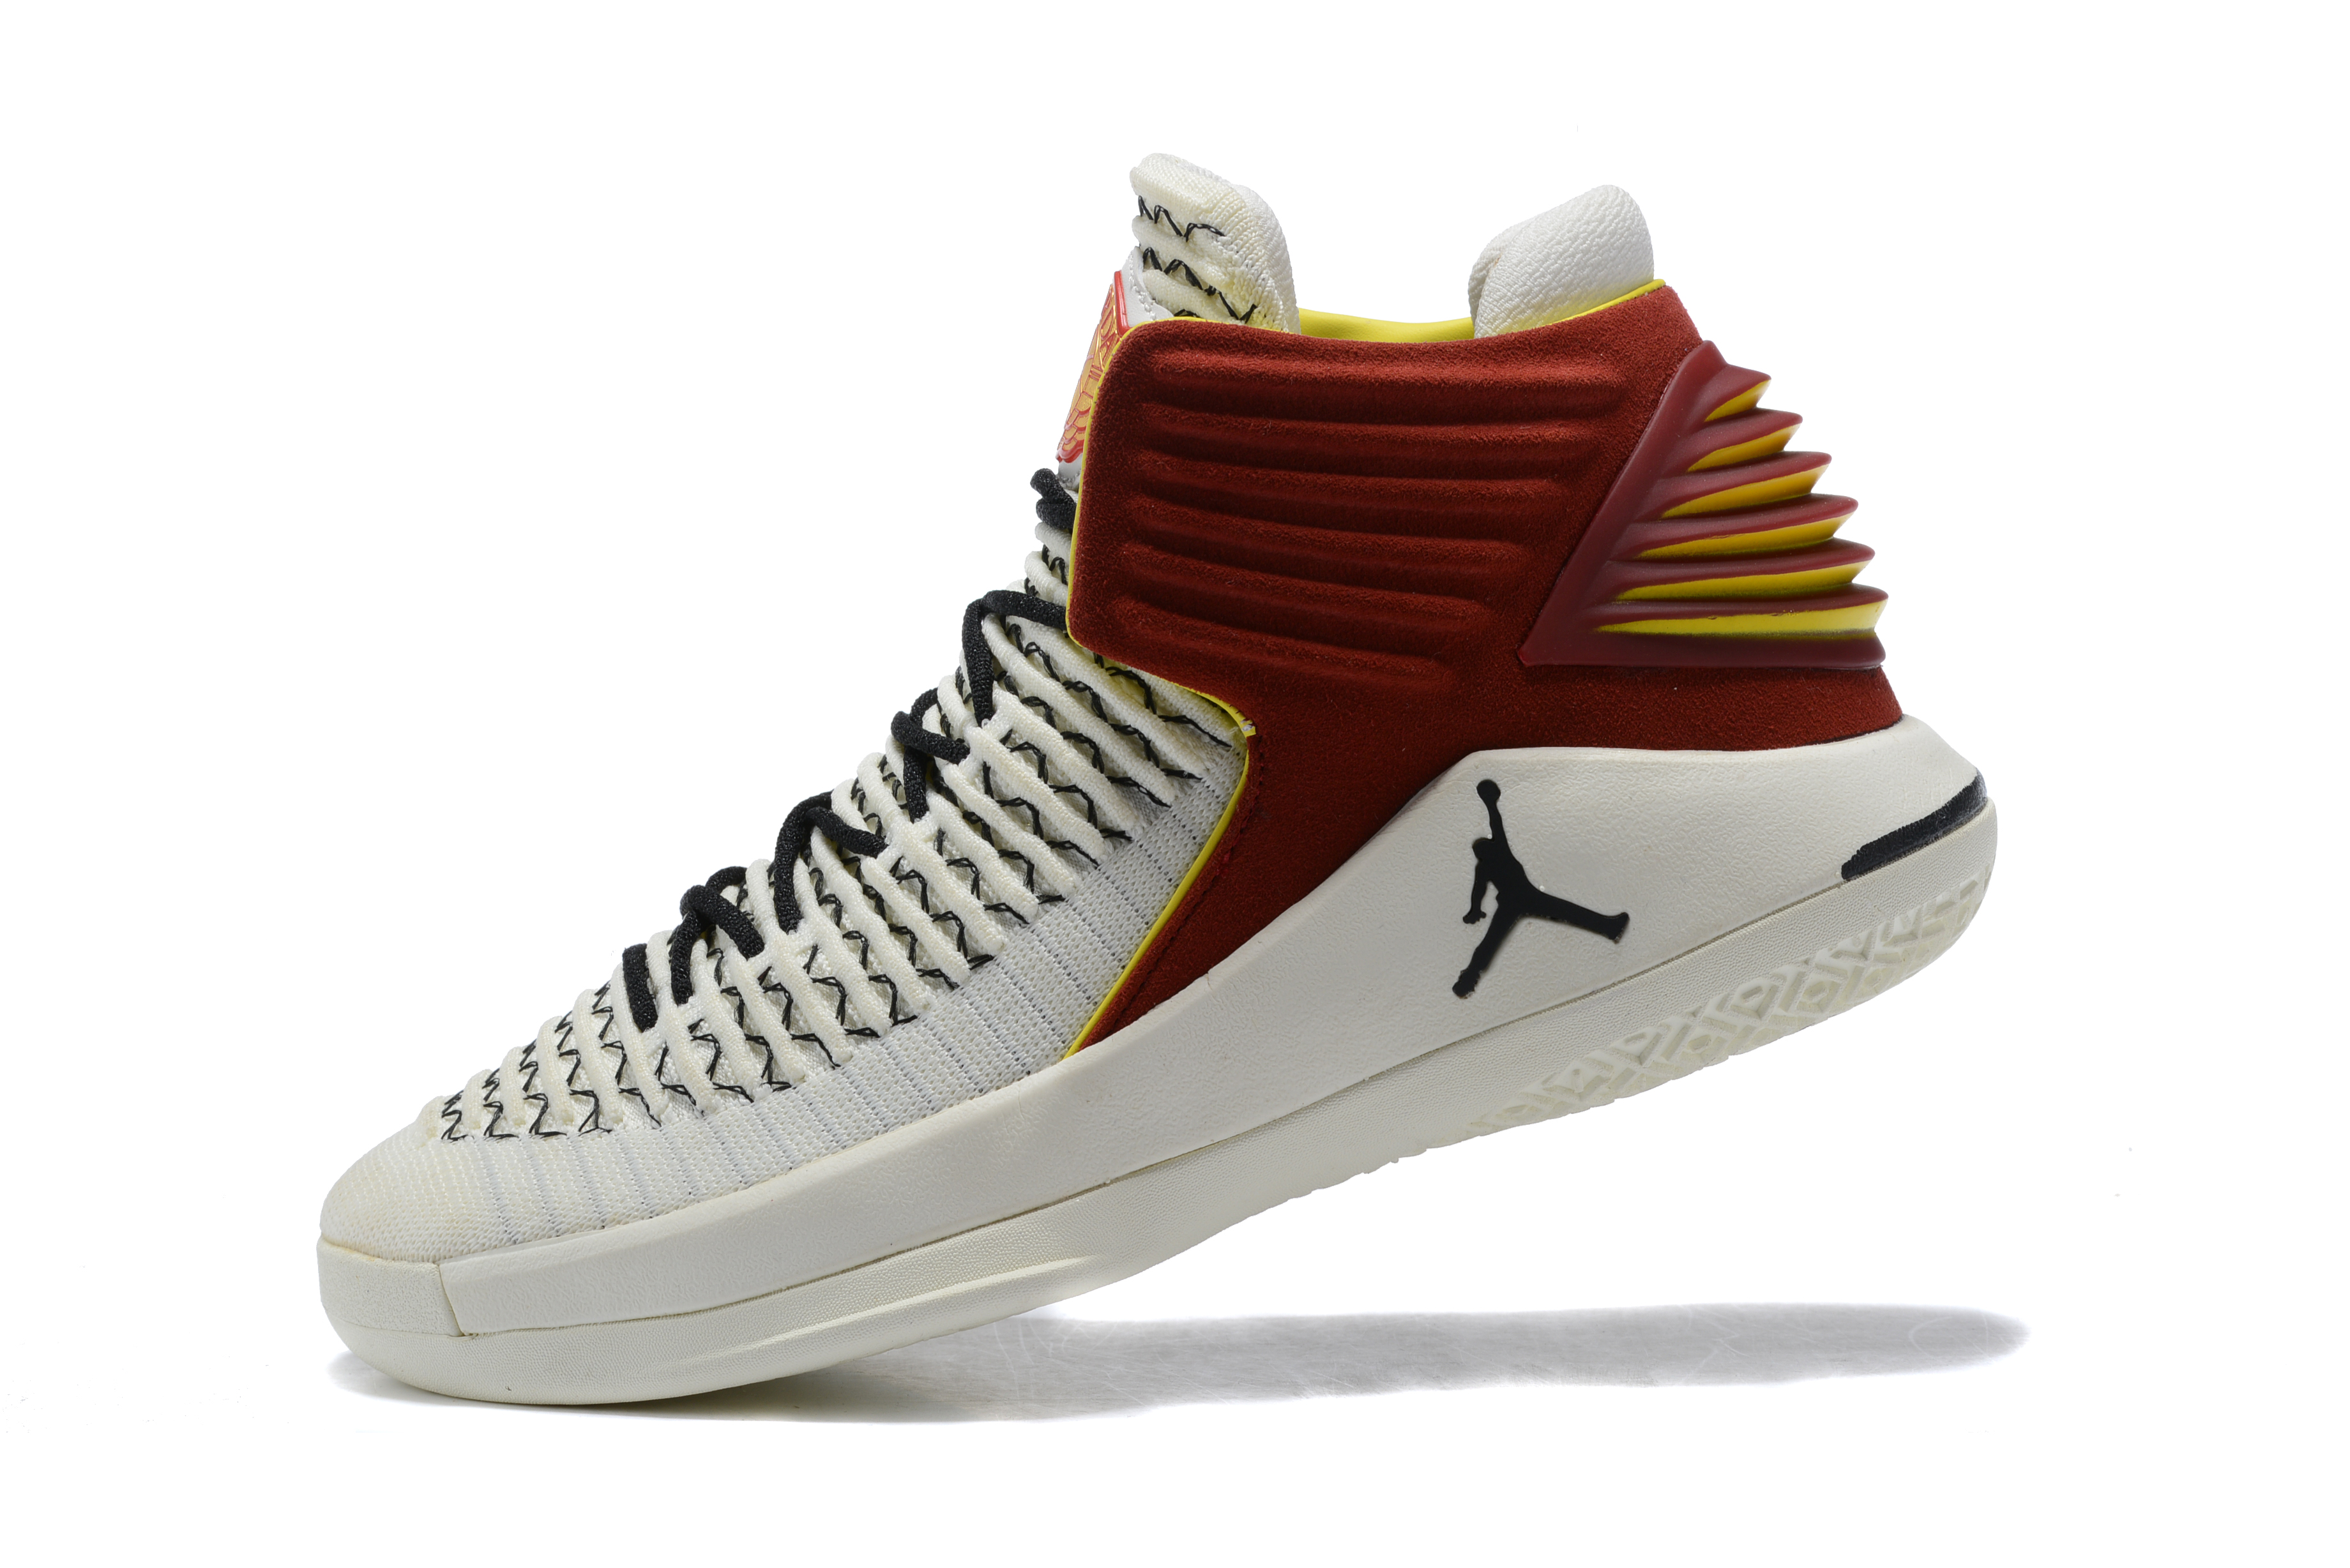 Jordan 32 White Wine Red Black Shoes